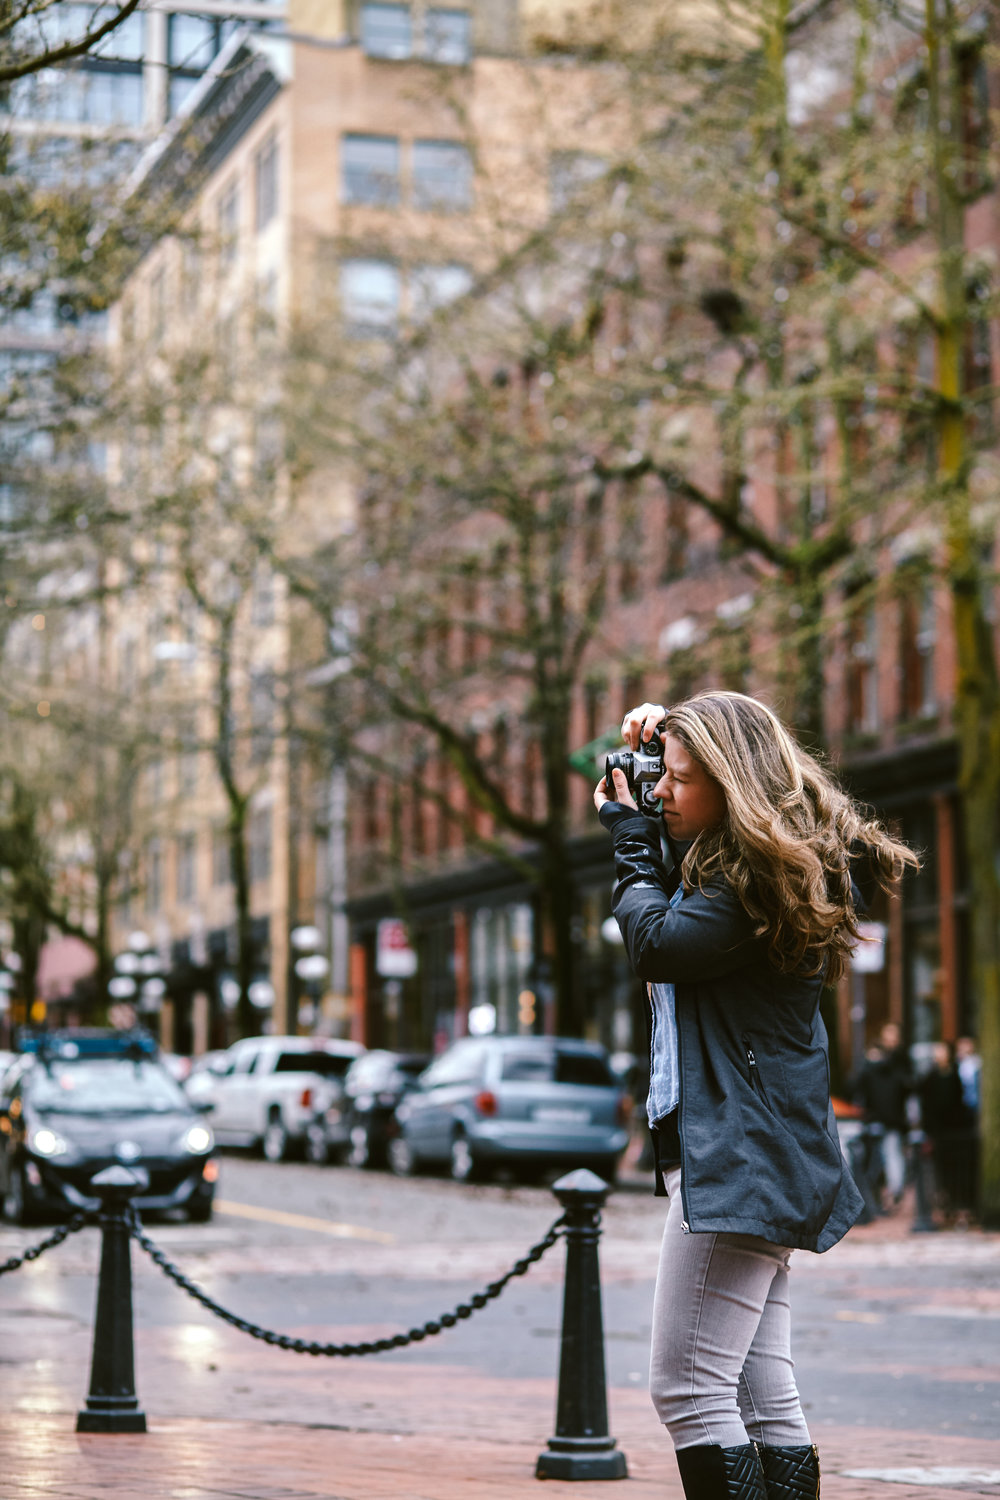 yennypaezphotography-vancouver-downtown-photographer 1.jpg